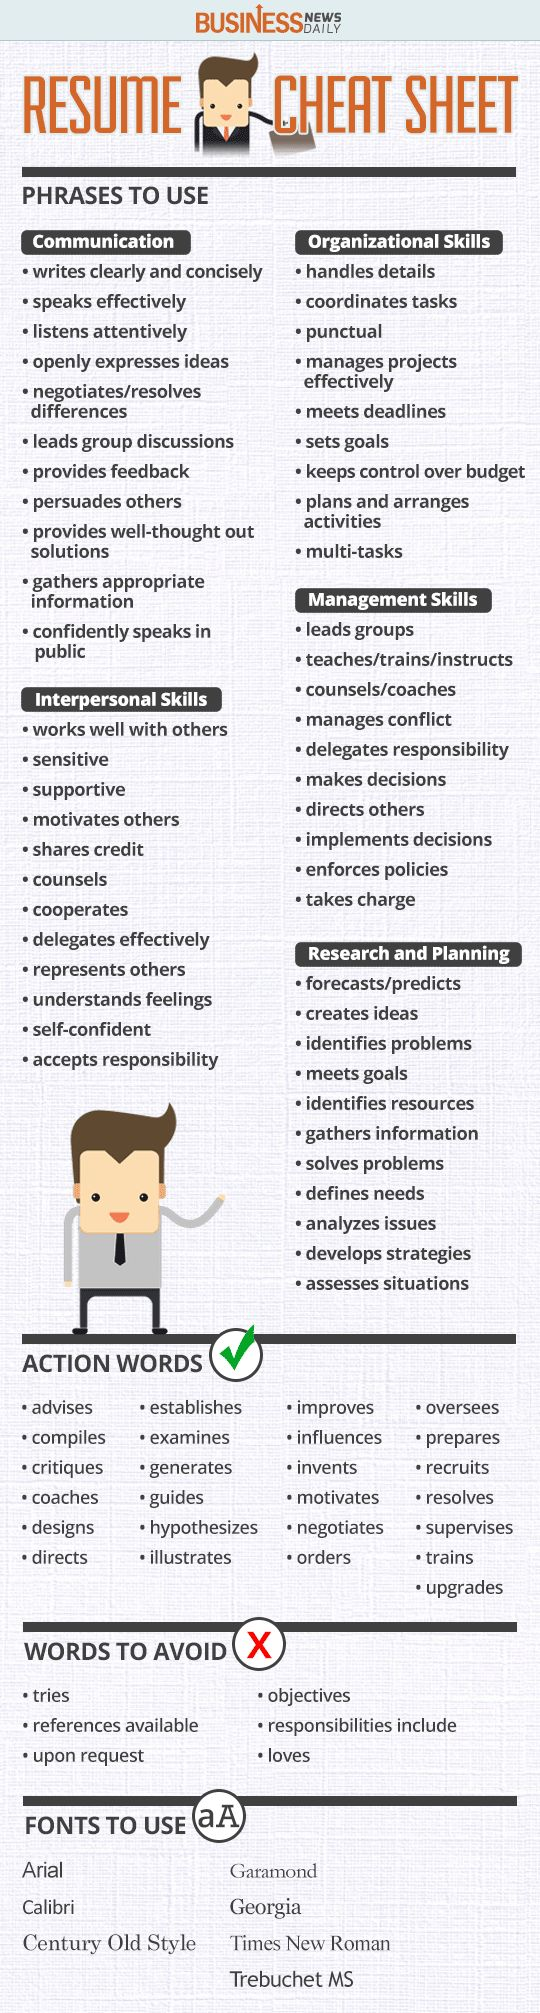 Opposenewapstandardsus  Pleasant  Ideas About Resume On Pinterest  Cv Format Resume Cv And  With Handsome Resume Cheat Sheet Infographic Andrews Almost Done With A Complete Unit On Employment Which With Alluring Sample Resume References Also How To Build The Best Resume In Addition Teen Job Resume And New Nursing Graduate Resume As Well As Resume Examples College Students Additionally Great Resume Template From Pinterestcom With Opposenewapstandardsus  Handsome  Ideas About Resume On Pinterest  Cv Format Resume Cv And  With Alluring Resume Cheat Sheet Infographic Andrews Almost Done With A Complete Unit On Employment Which And Pleasant Sample Resume References Also How To Build The Best Resume In Addition Teen Job Resume From Pinterestcom